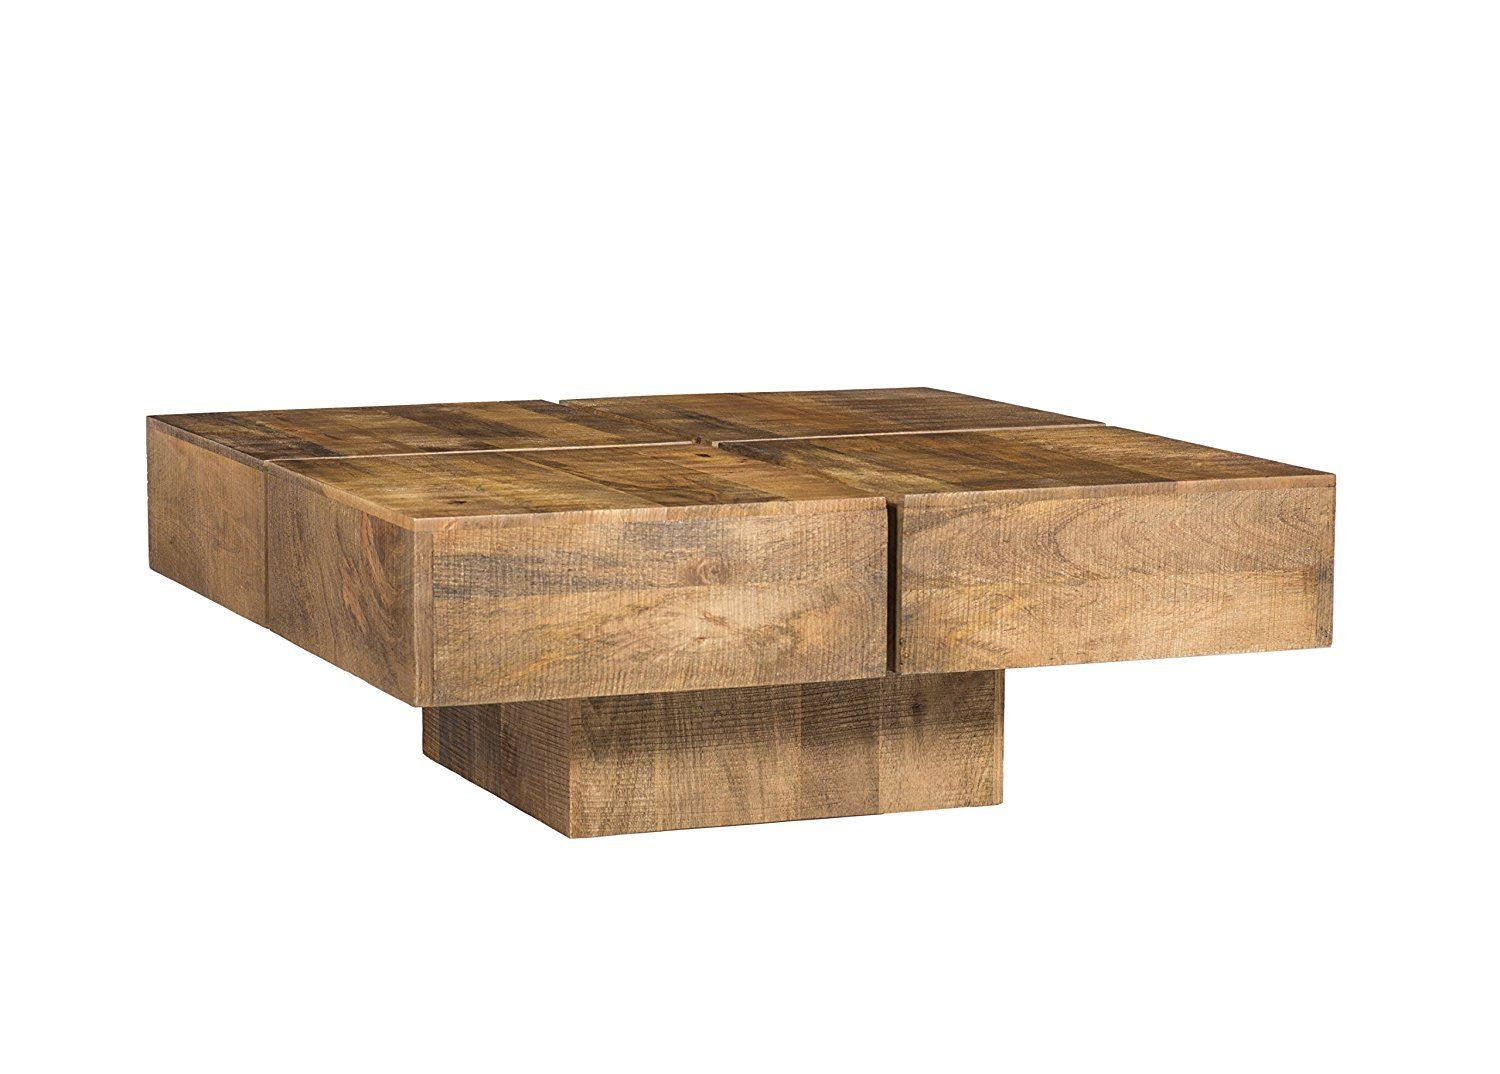 Cool Woodkings Couchtisch Amberley xcm Holz Mango natural rustic Echtholz modern Design